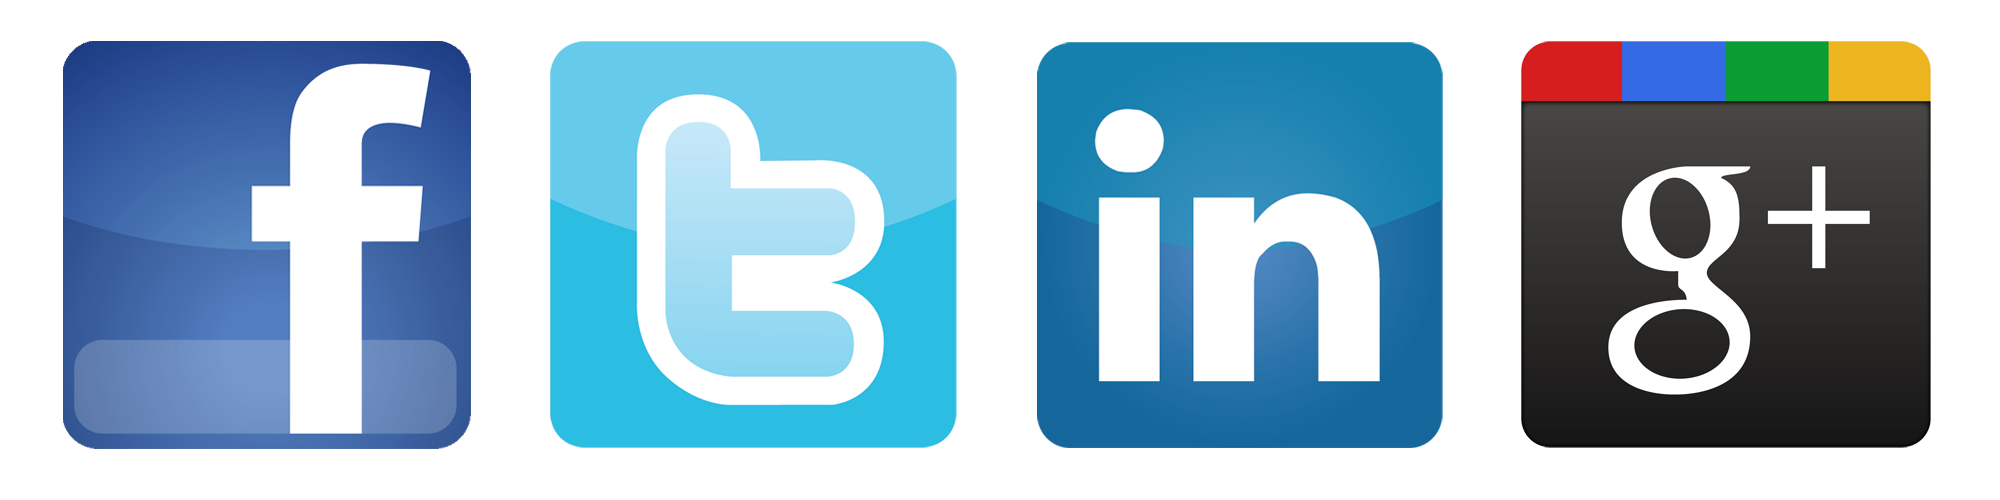 twitter, facebook, linkedin, google plus logo button png image #1852